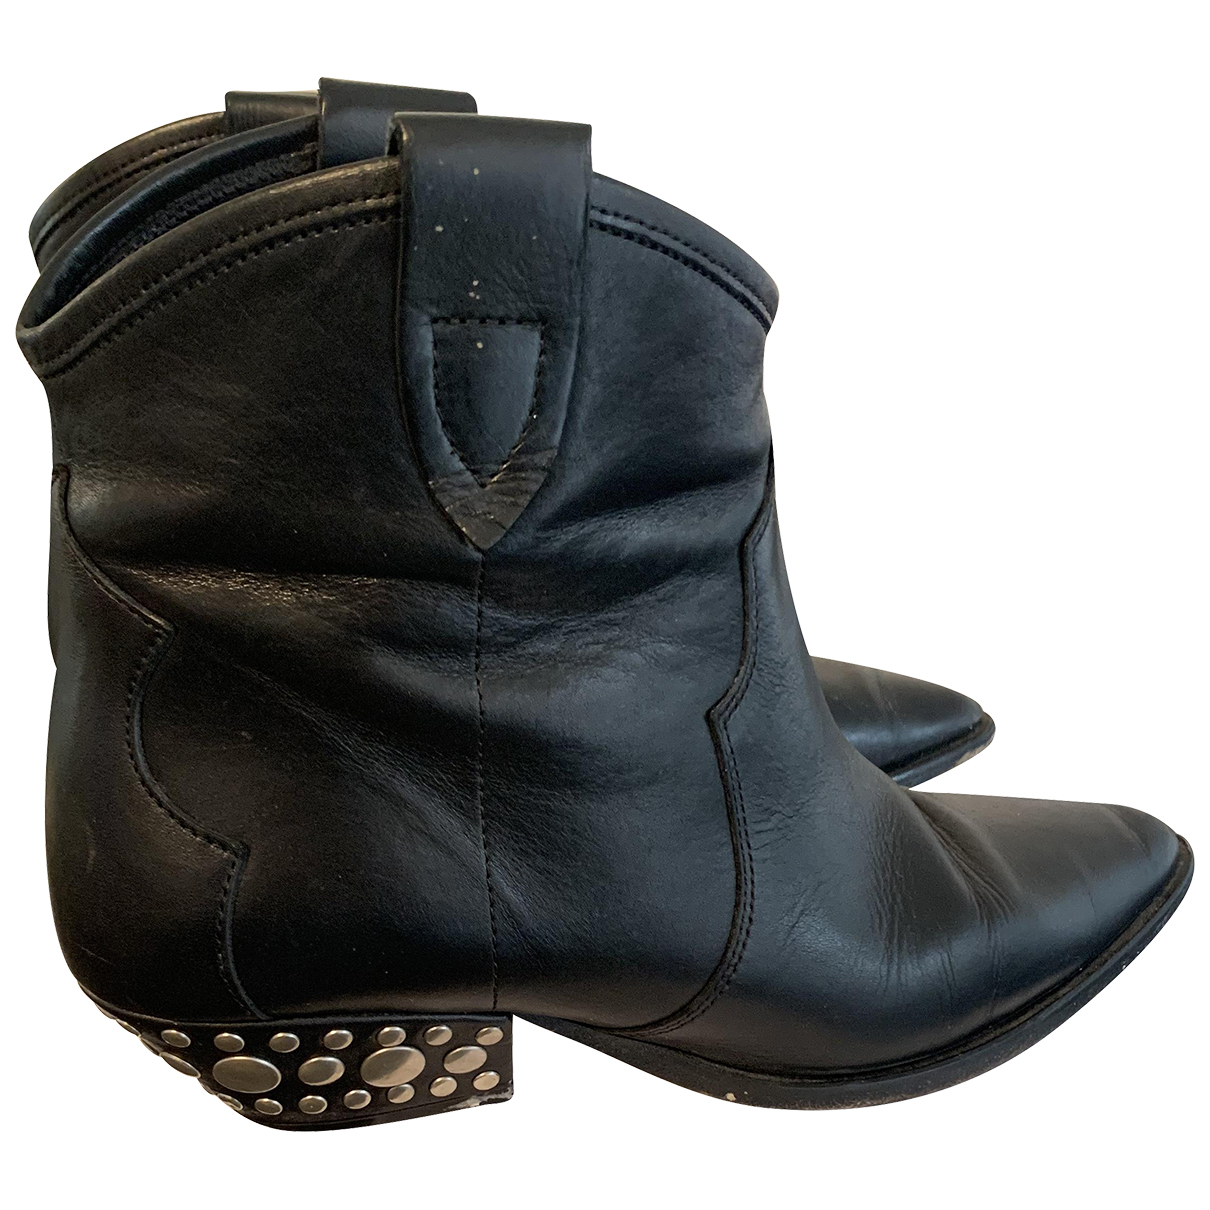 Isabel Marant N Black Leather Ankle boots for Women 40 EU